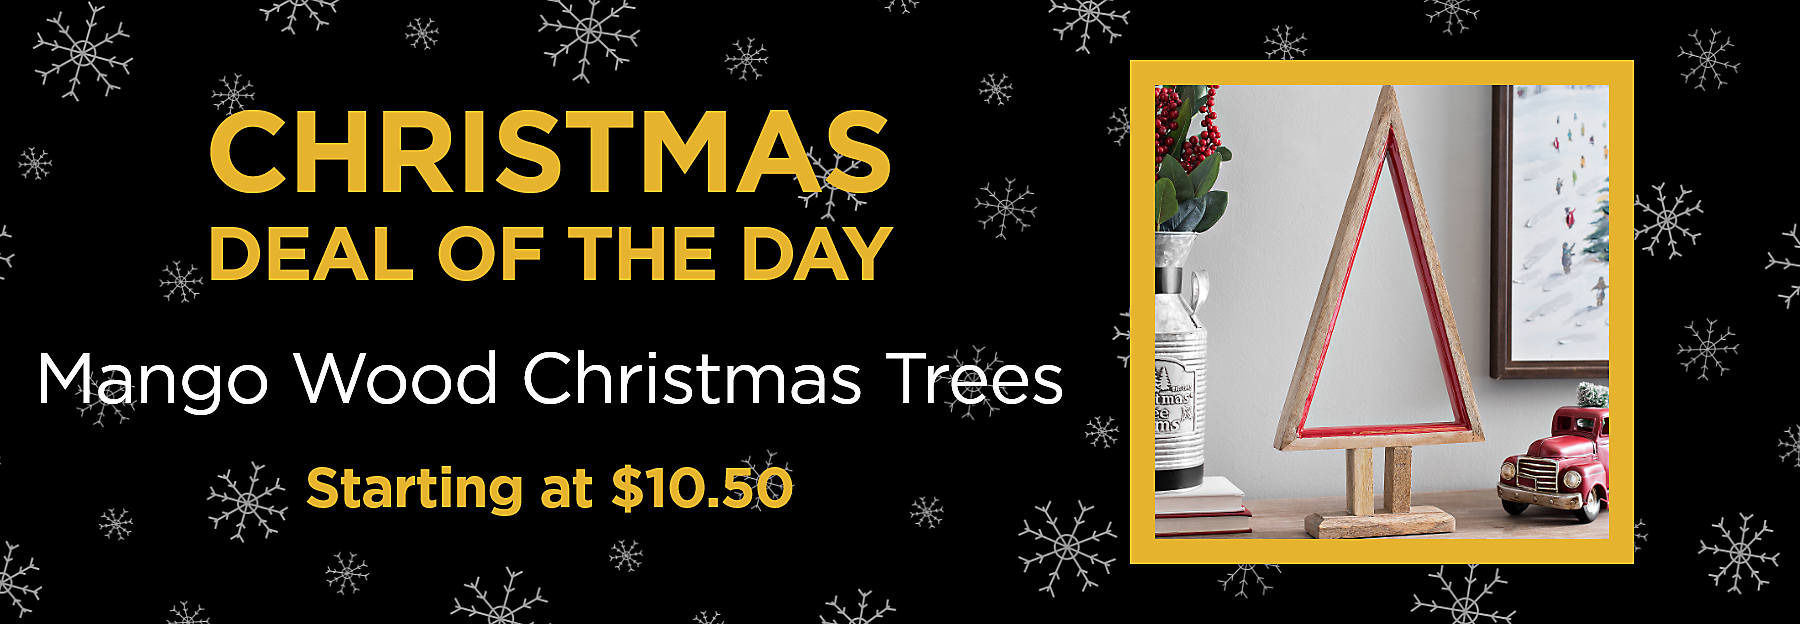 Christmas Deal of the Day Mango Wood Christmas Trees Starting at $10.50